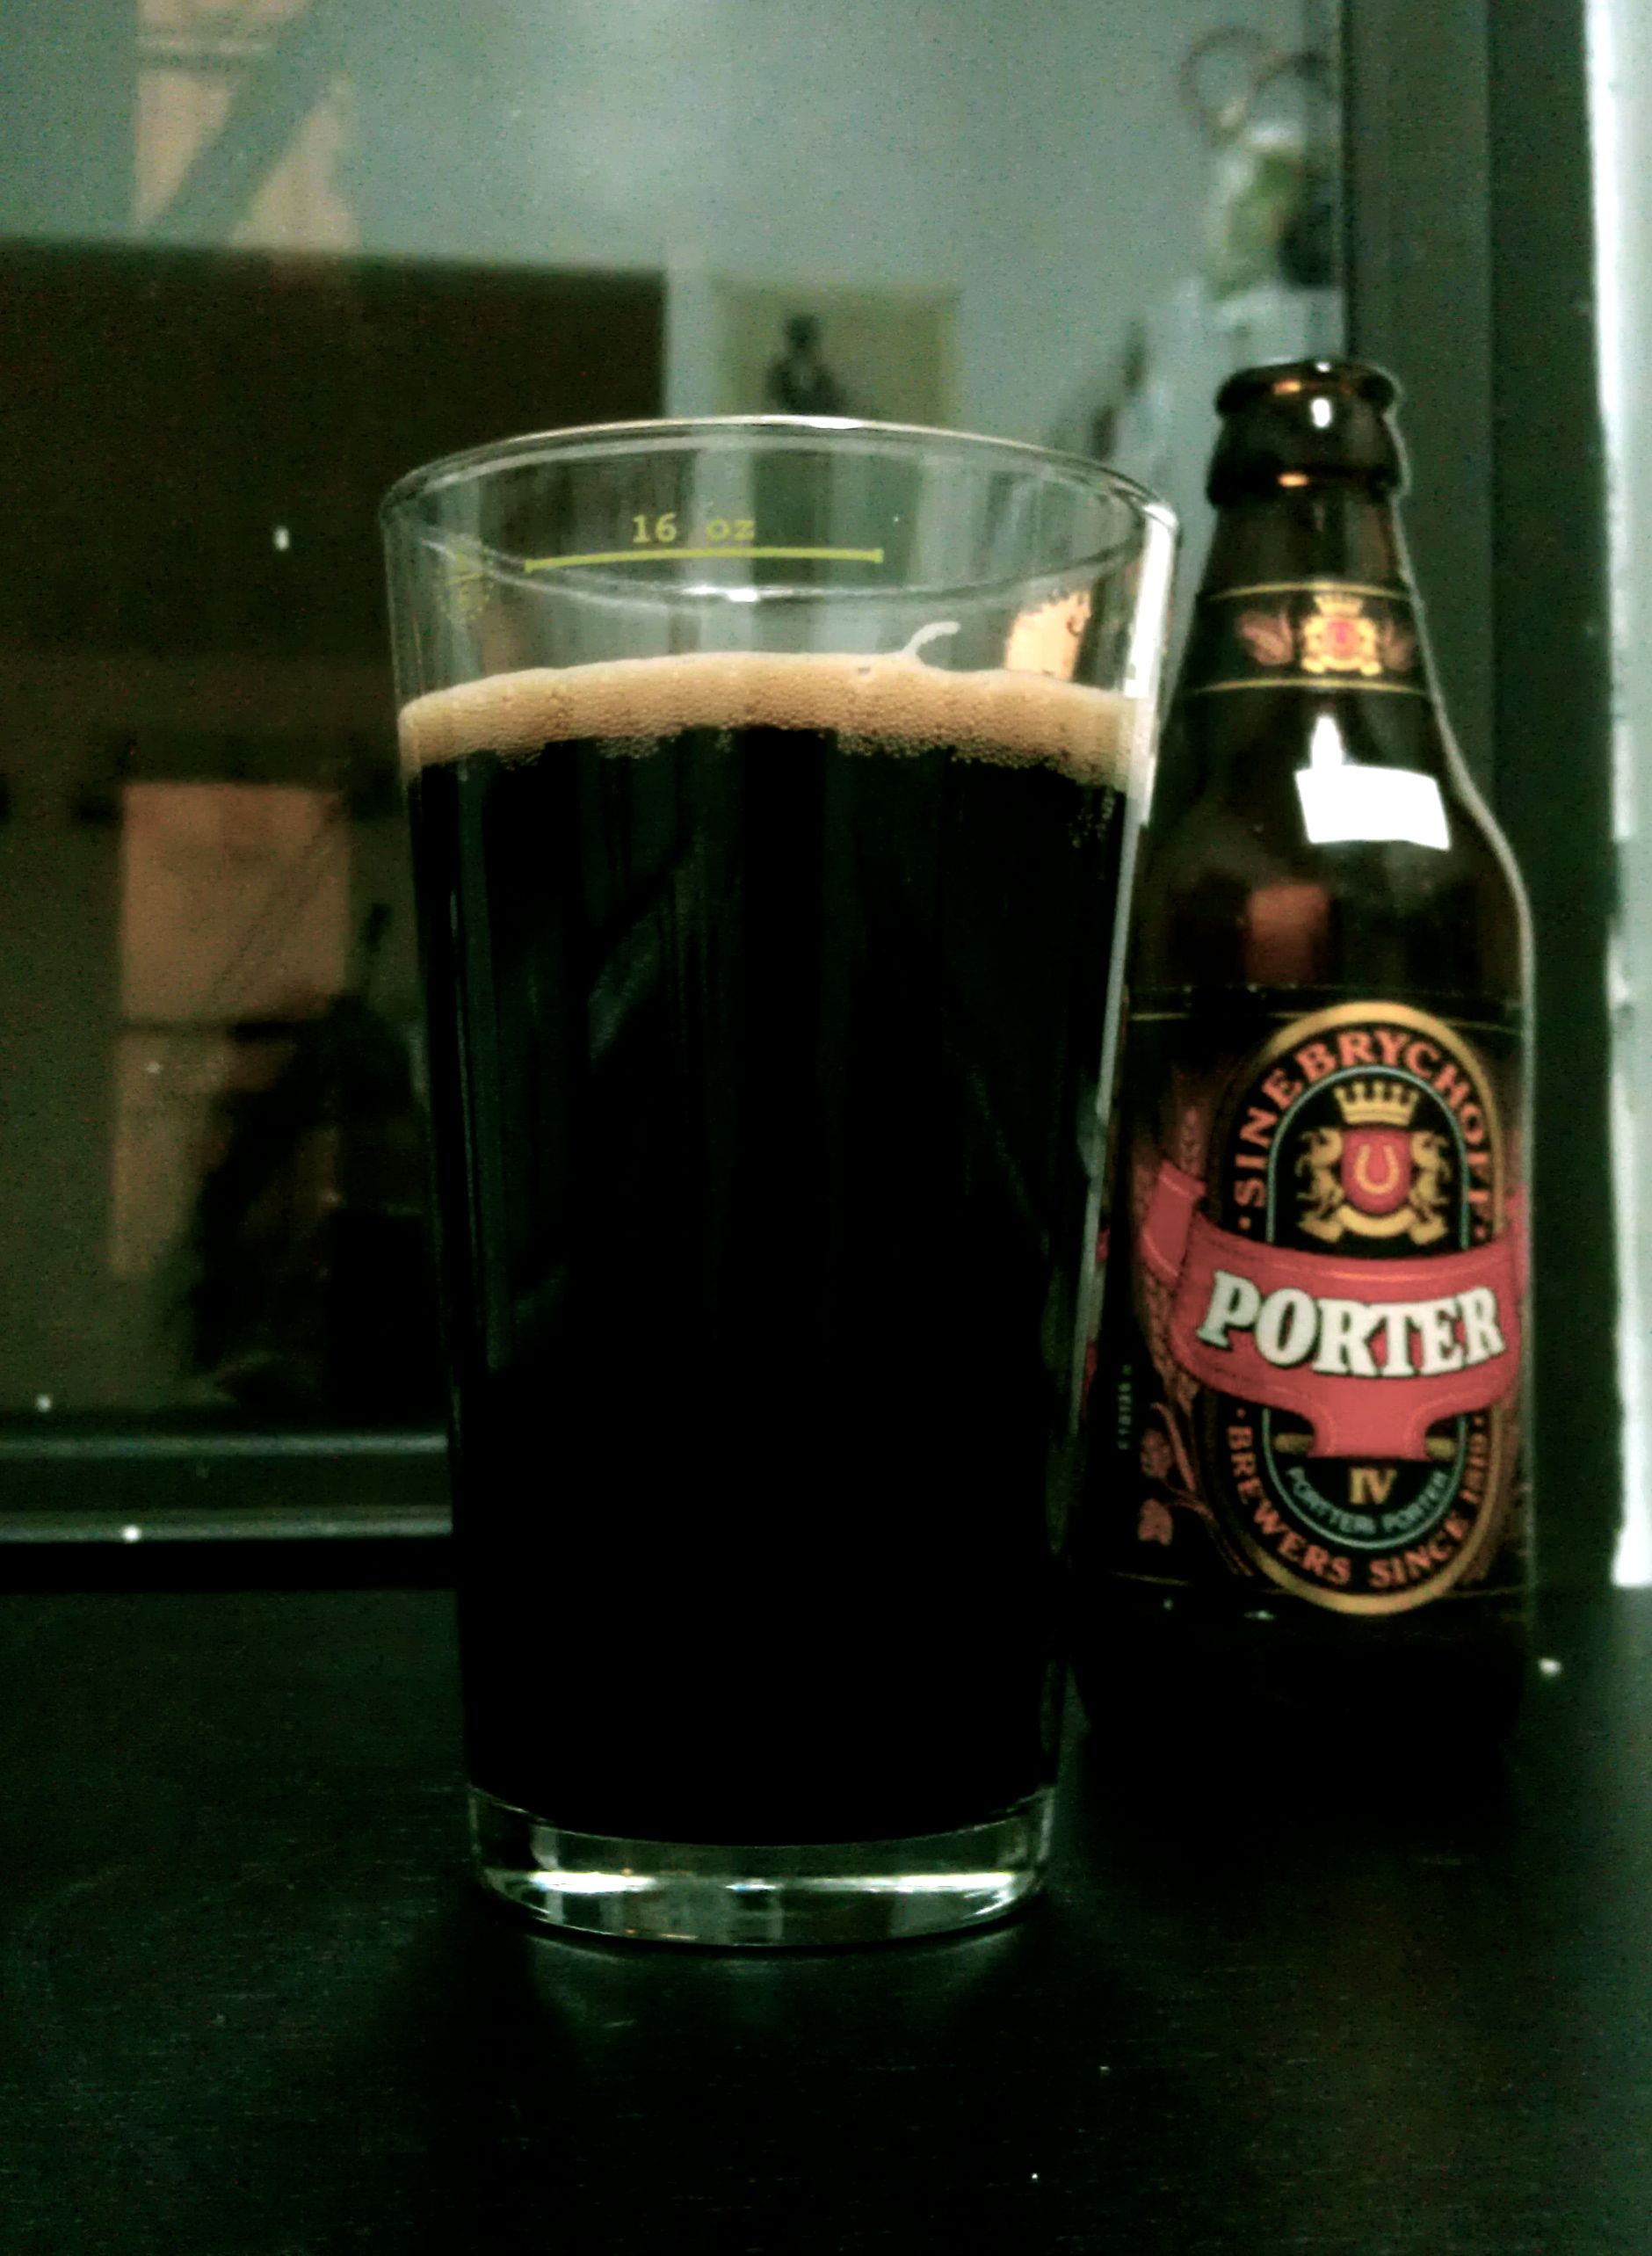 Le Meilleur Baltic Porter The Year In Beer Ce Mois Ci